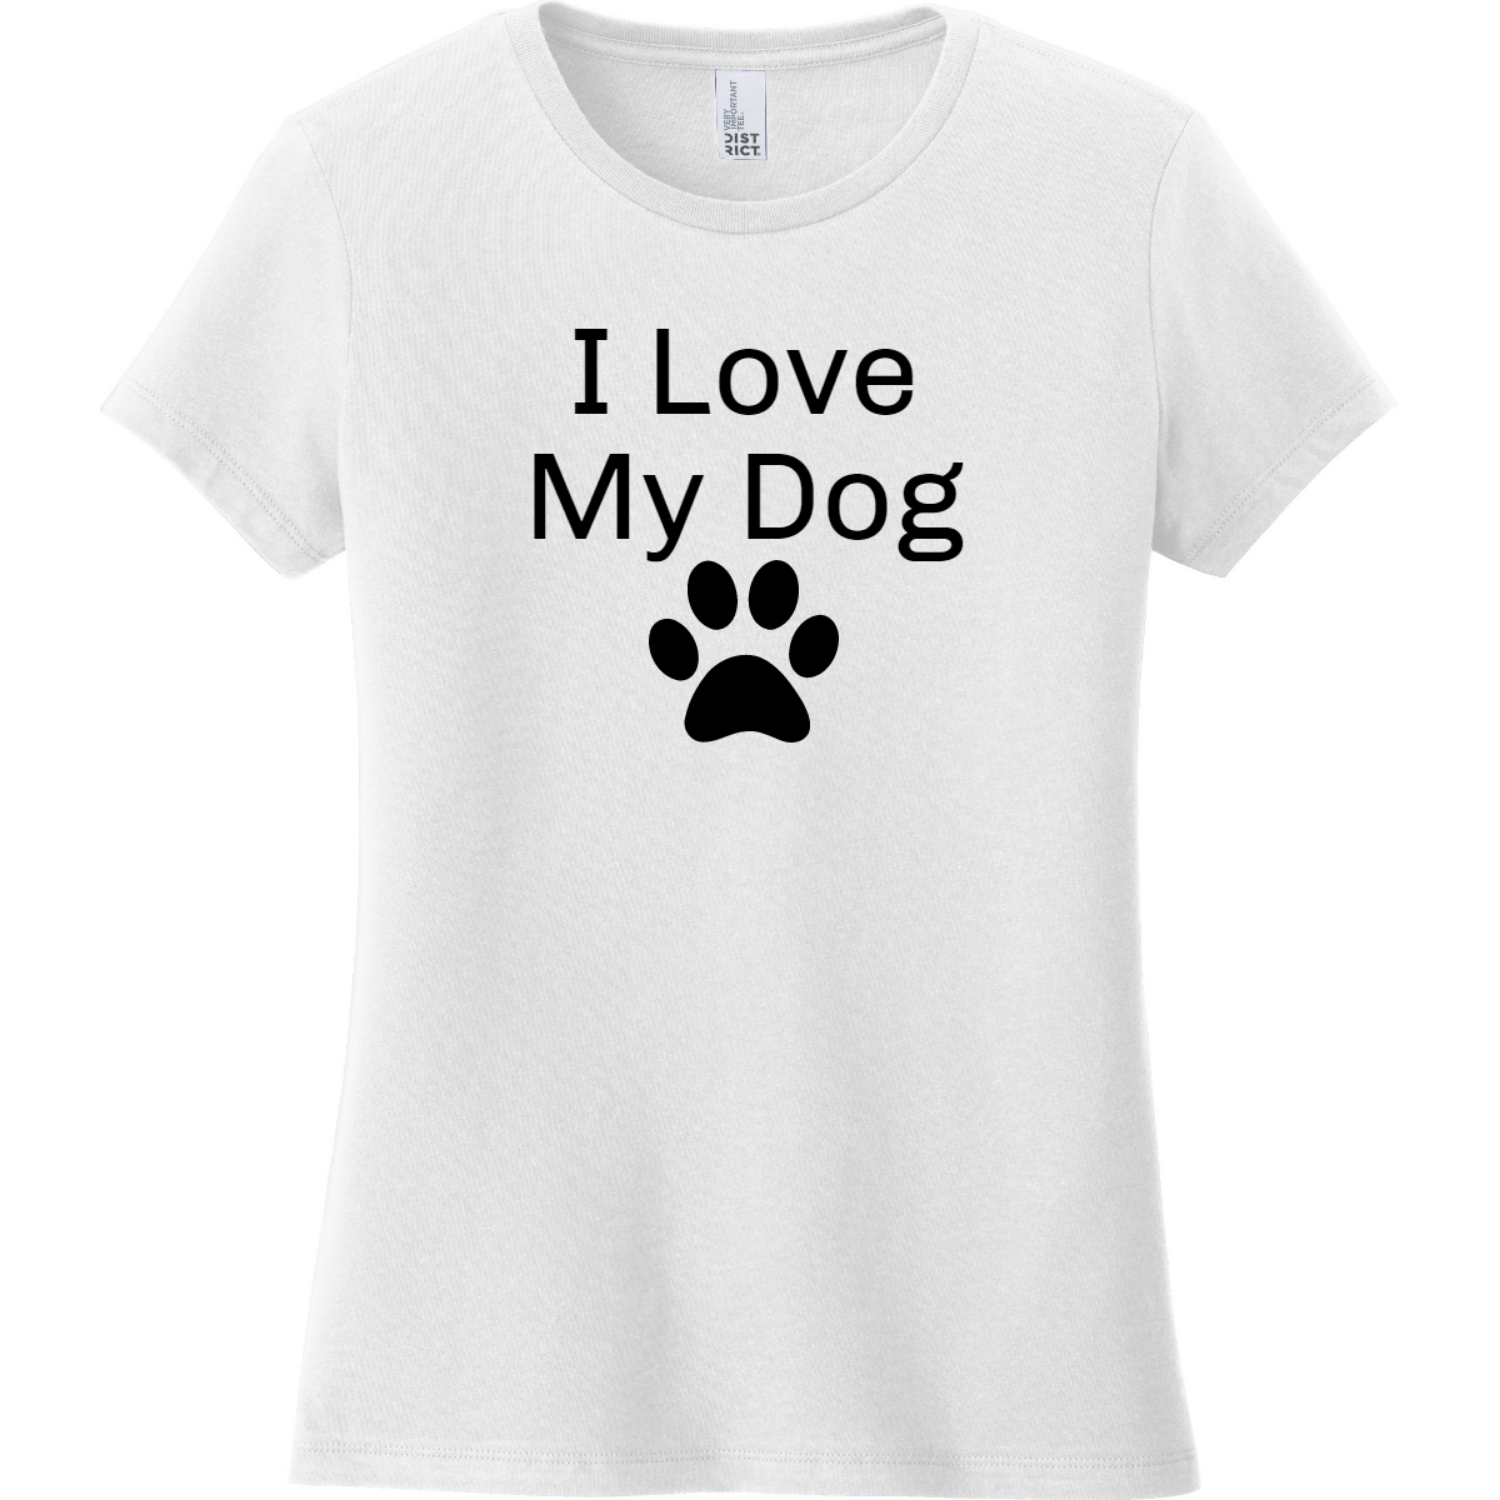 I Love My Dog Women's T-Shirt White District Women's Very Important Tee DT6002